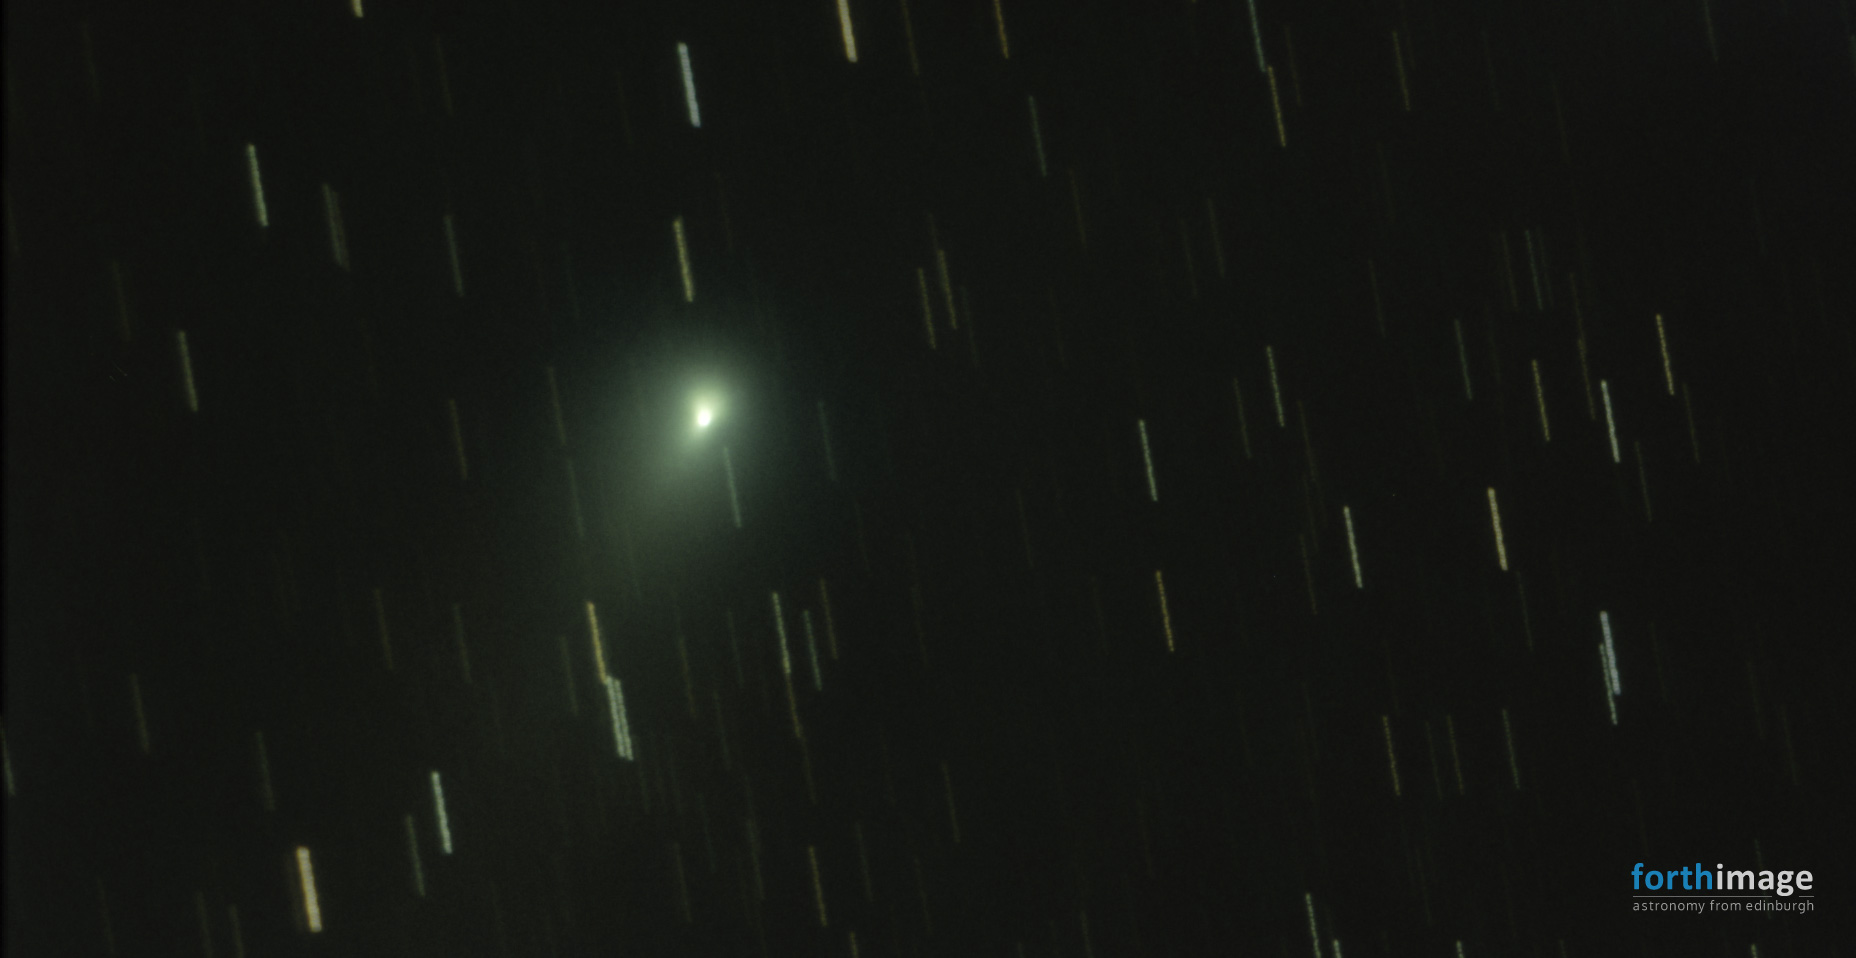 Comet 21P/Giacobini-Zinner brightening and tail developing